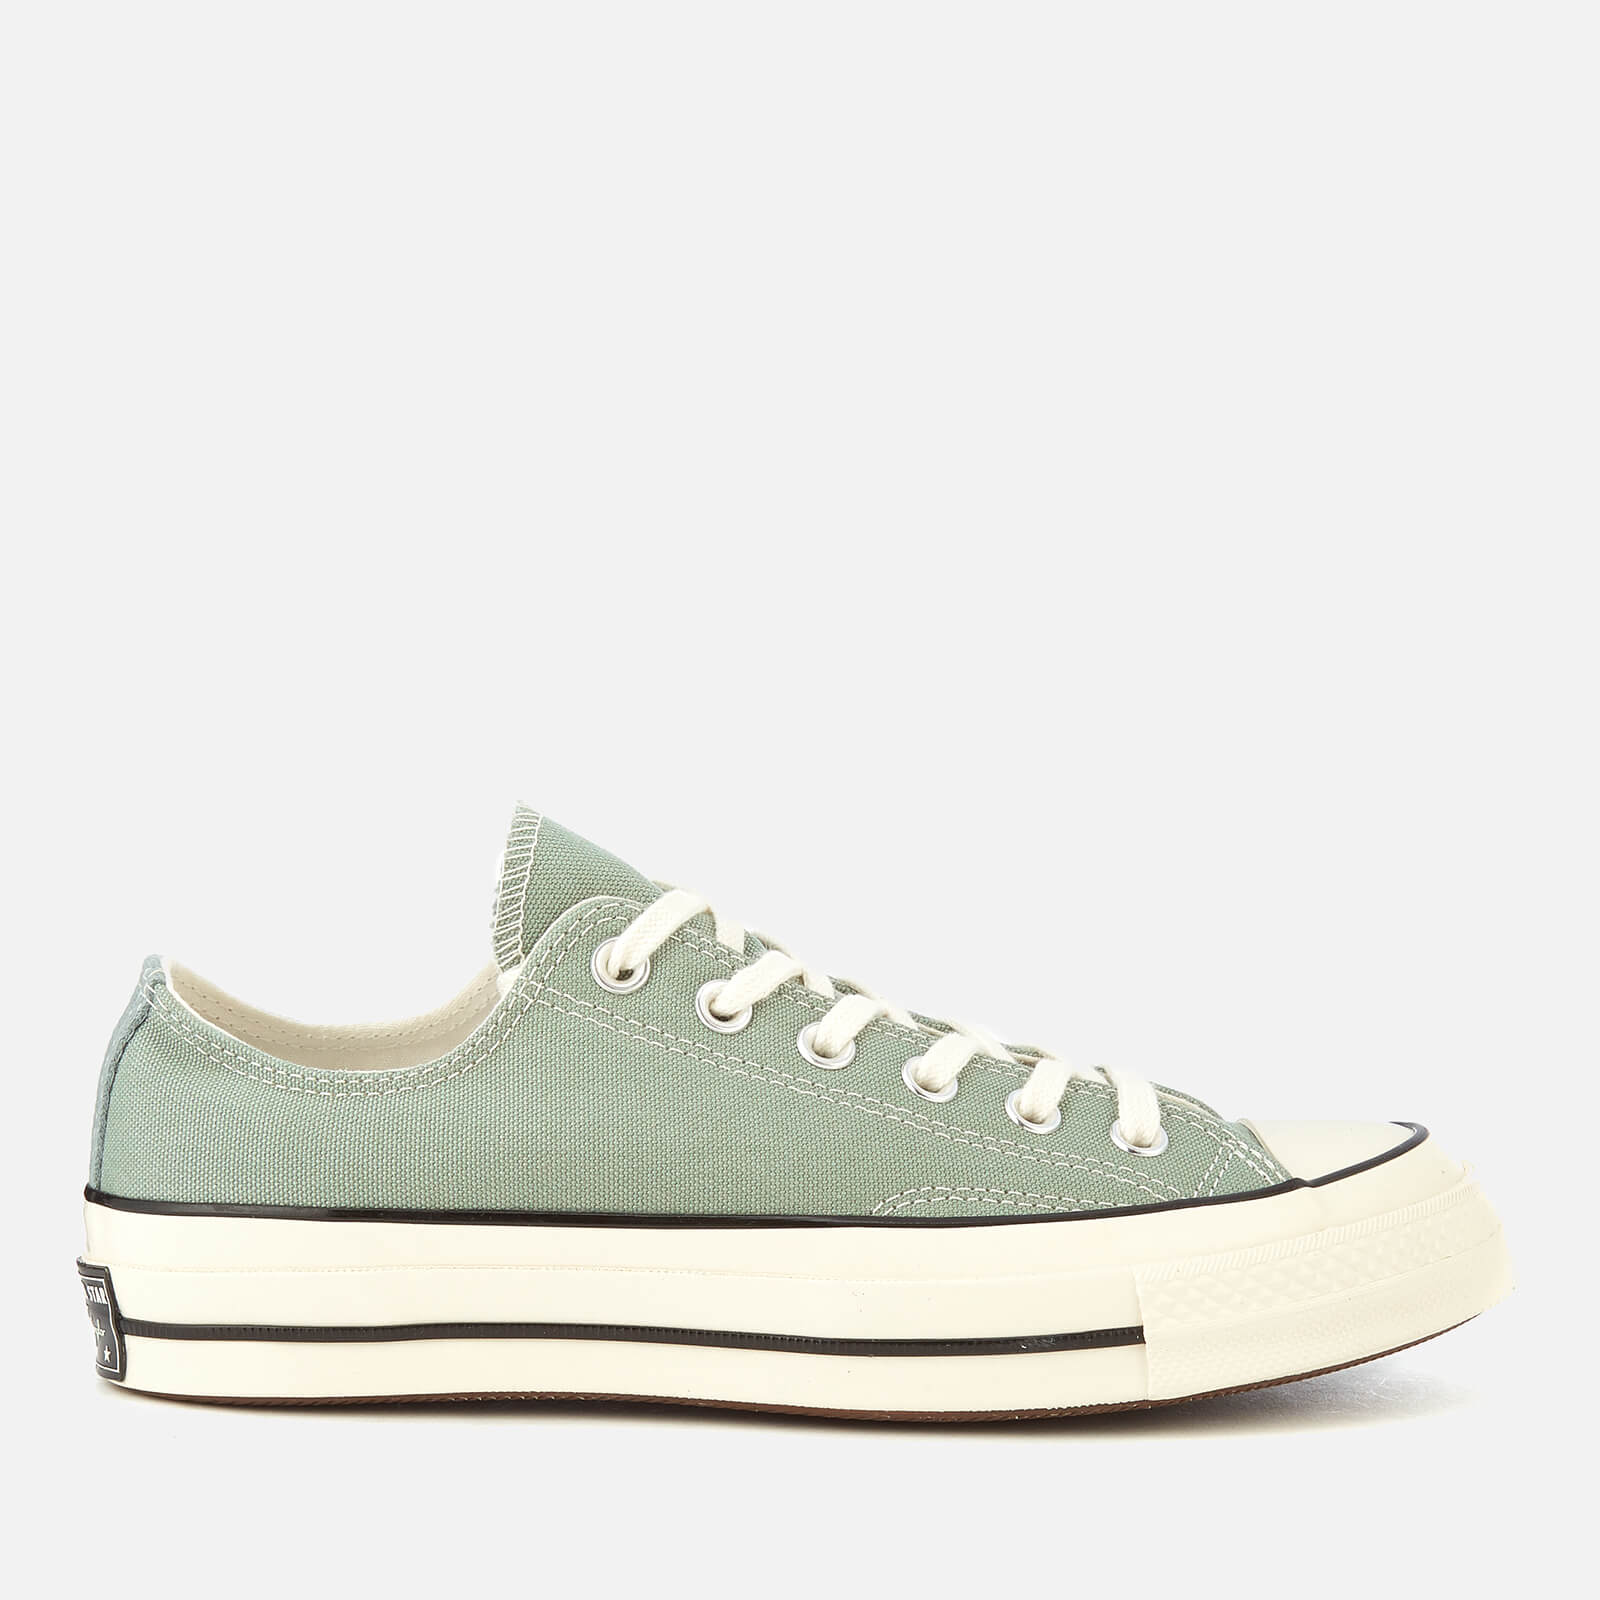 065b76889bb4 Converse Chuck Taylor All Star  70 Ox Trainers - Mica Green Black Egret -  Free UK Delivery over £50